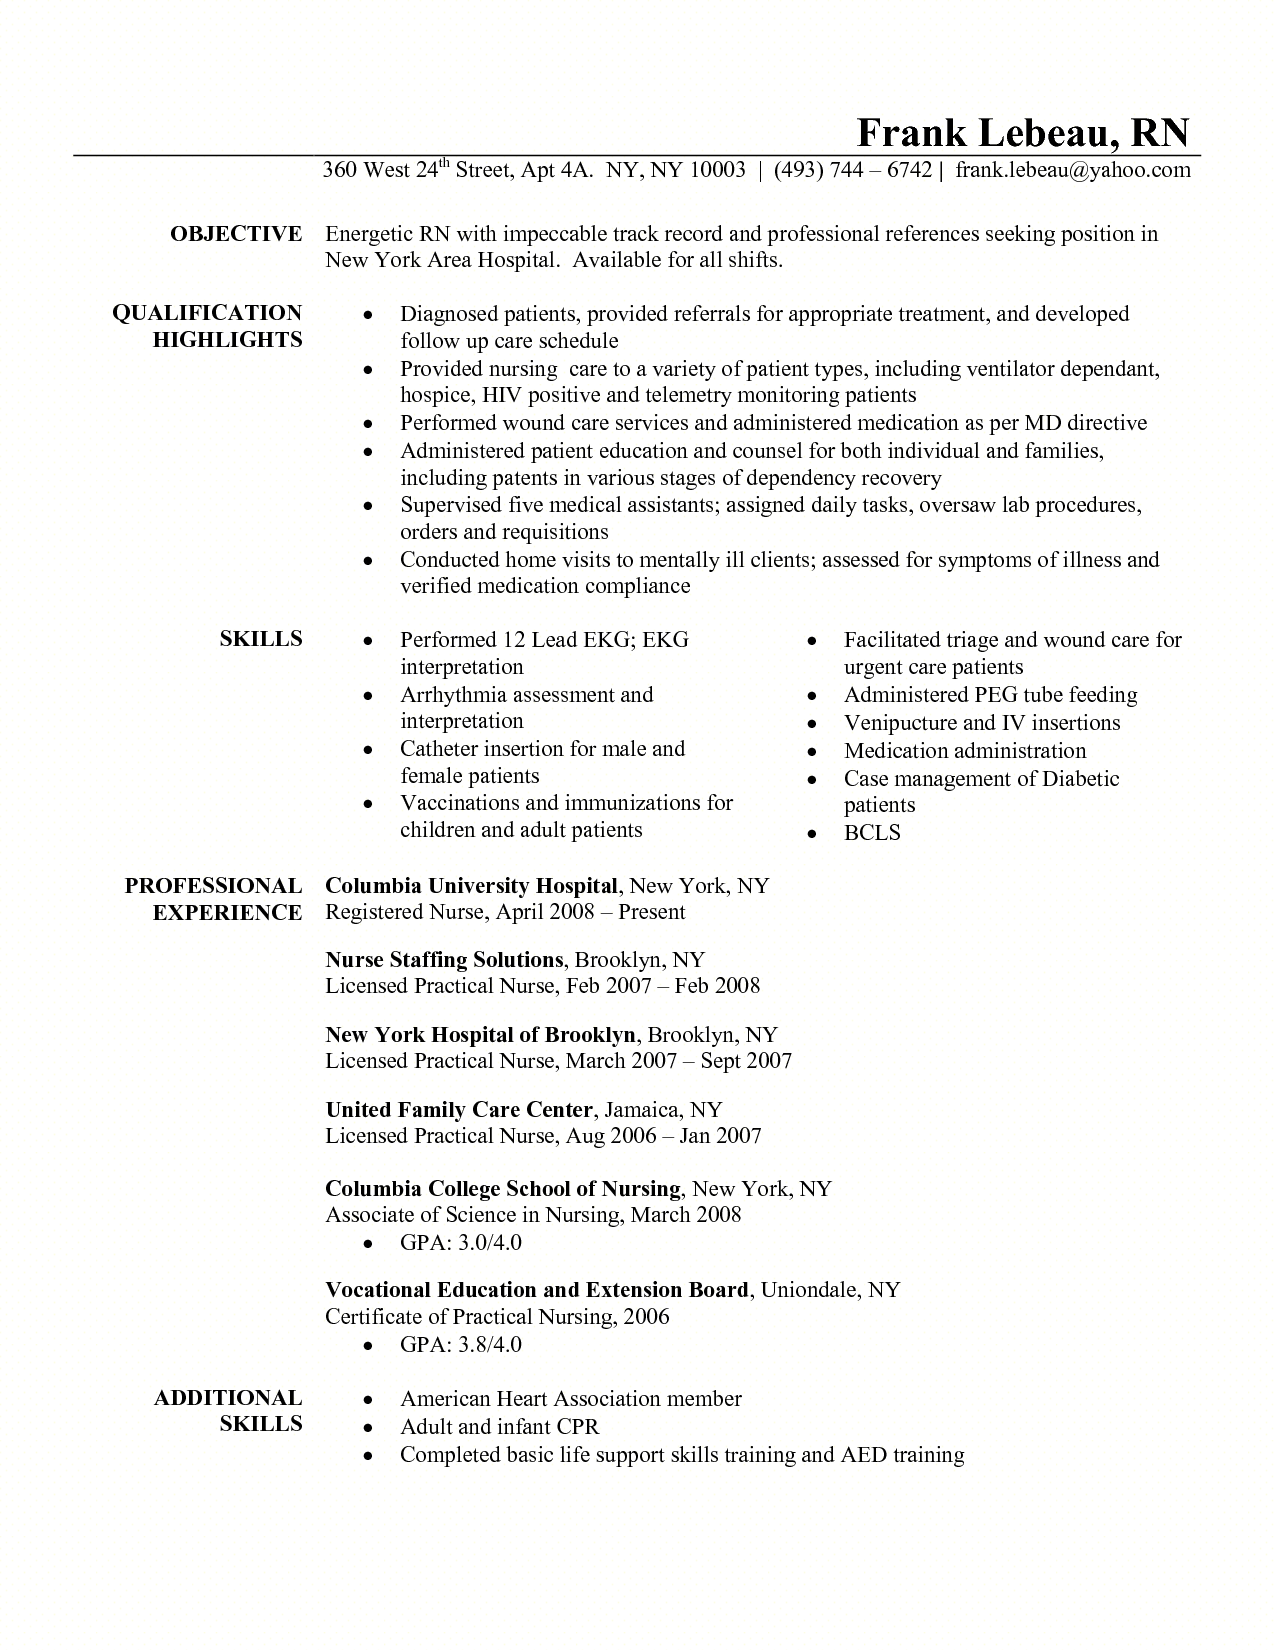 rn resume templates innews co professional nurse resume cv rn resume templates innews co professional nurse